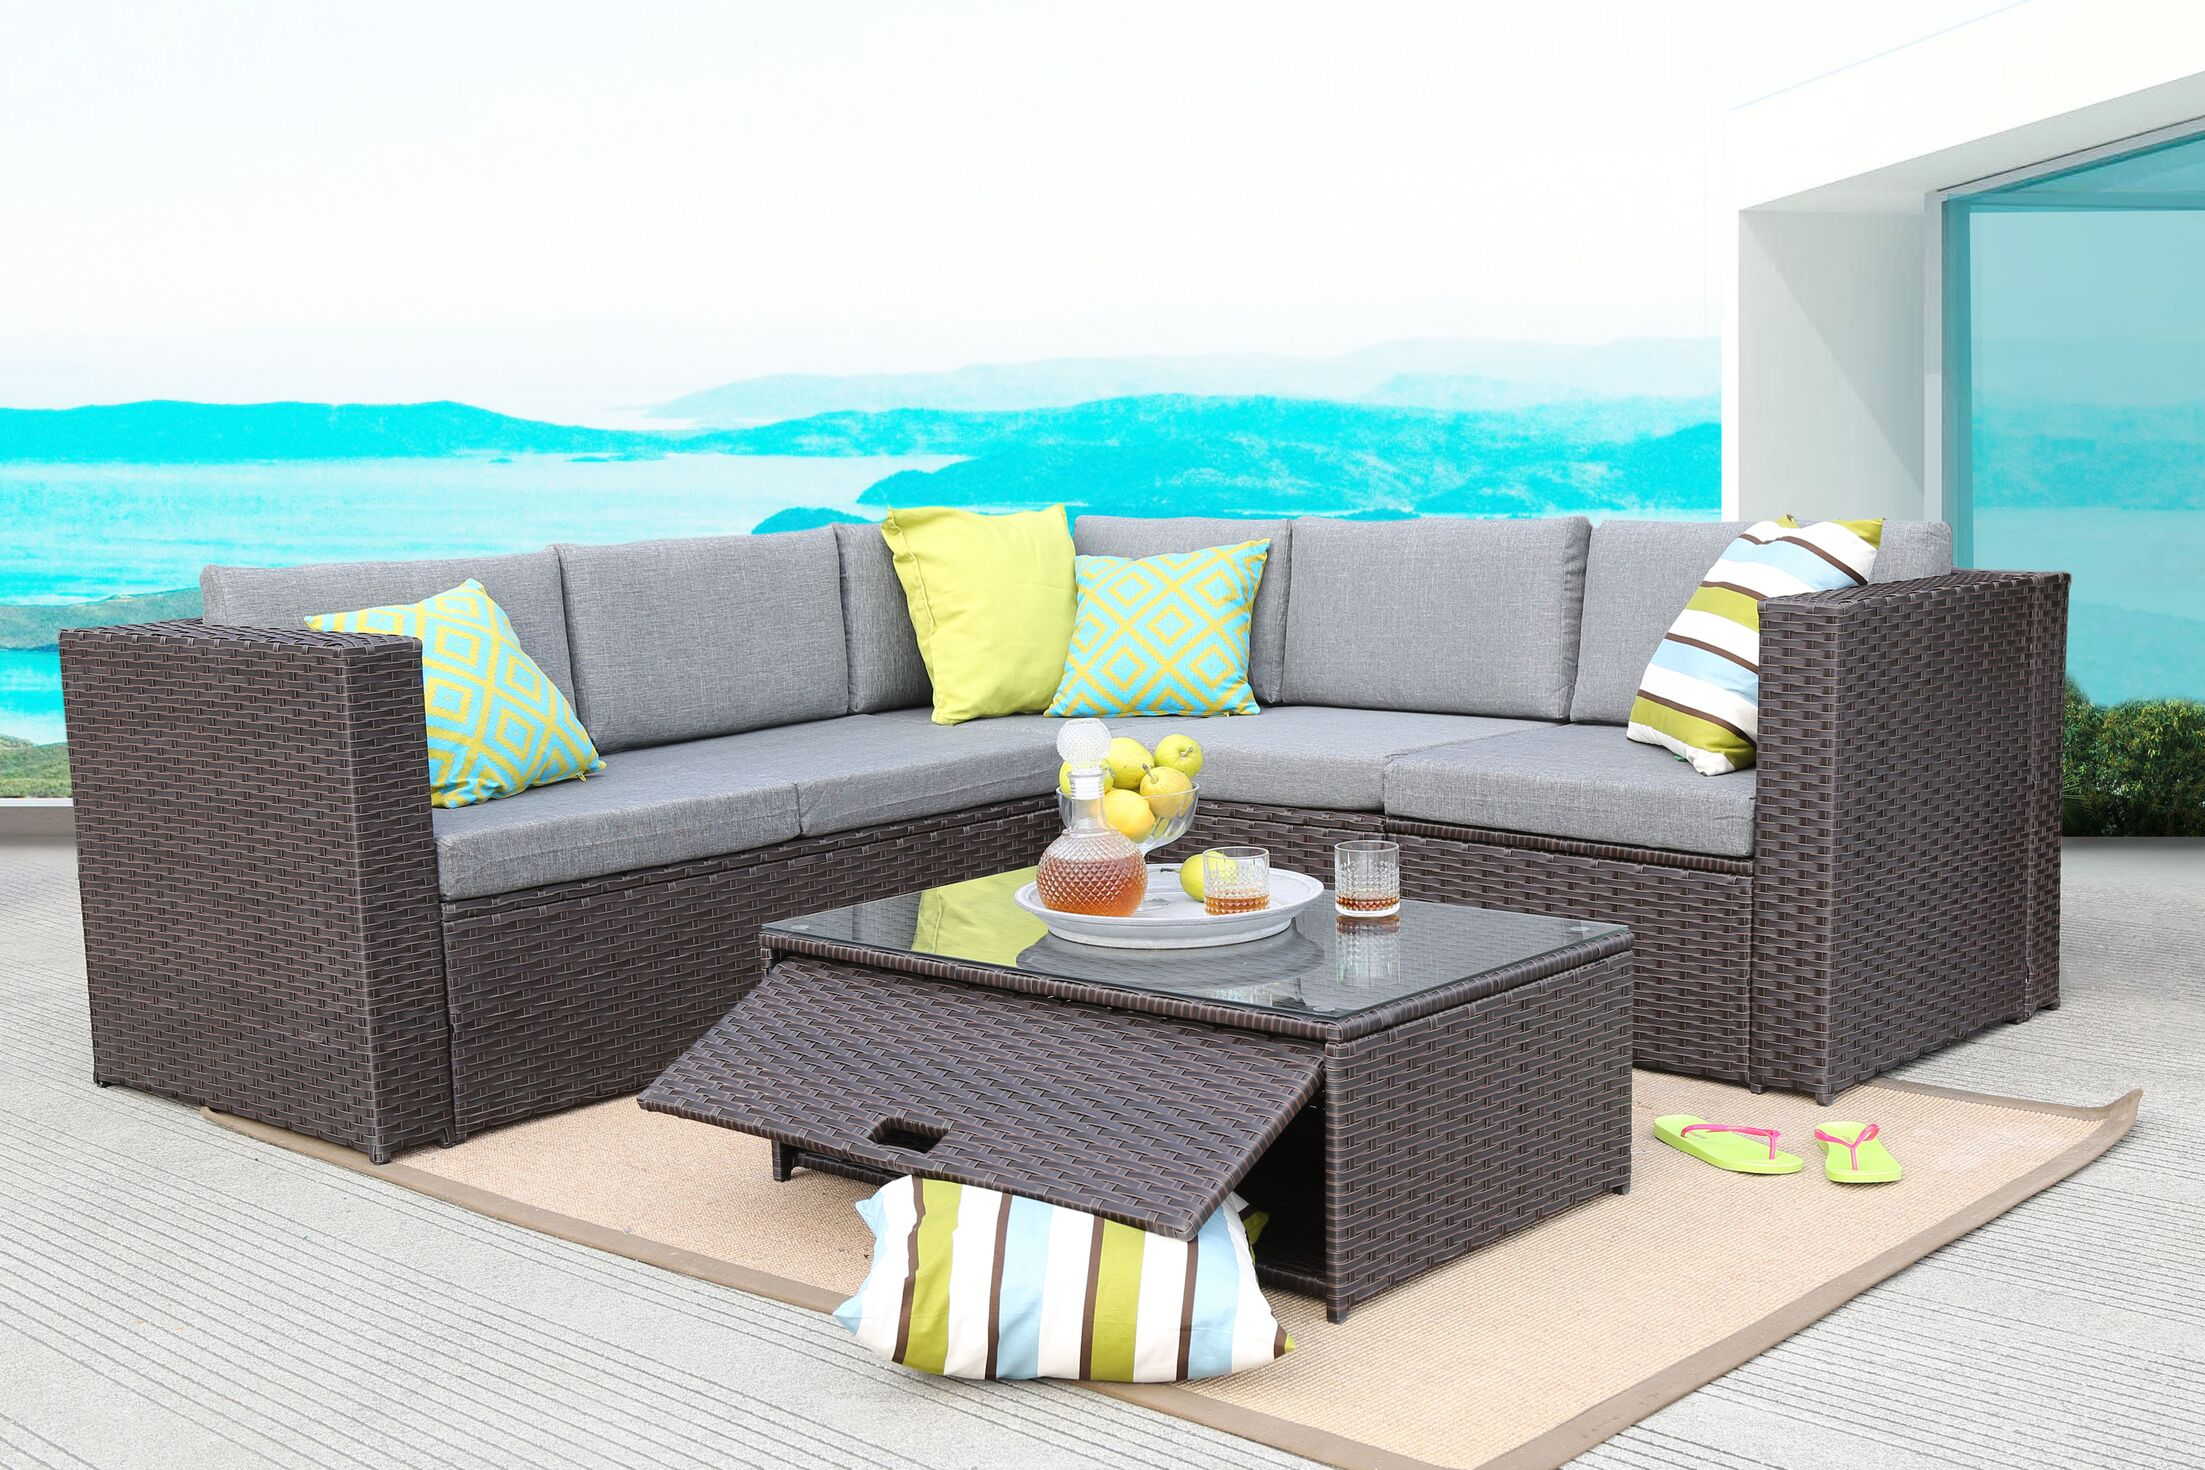 4 Piece Rattan Sectional Set with Cushions Frame Color: Chocolate